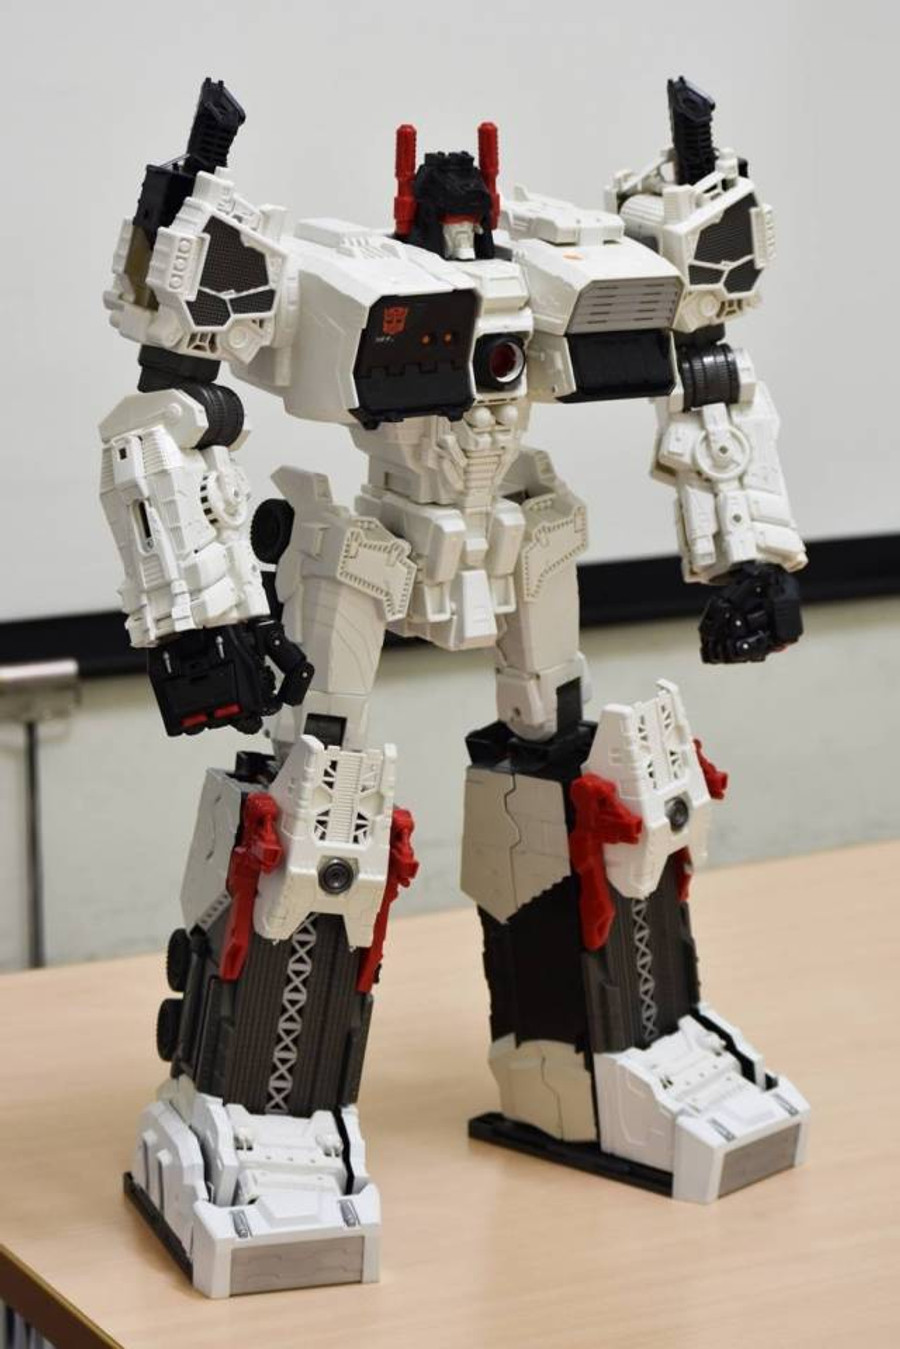 DNA Design - DK-04M Metroplex Foot Upgrade Kit